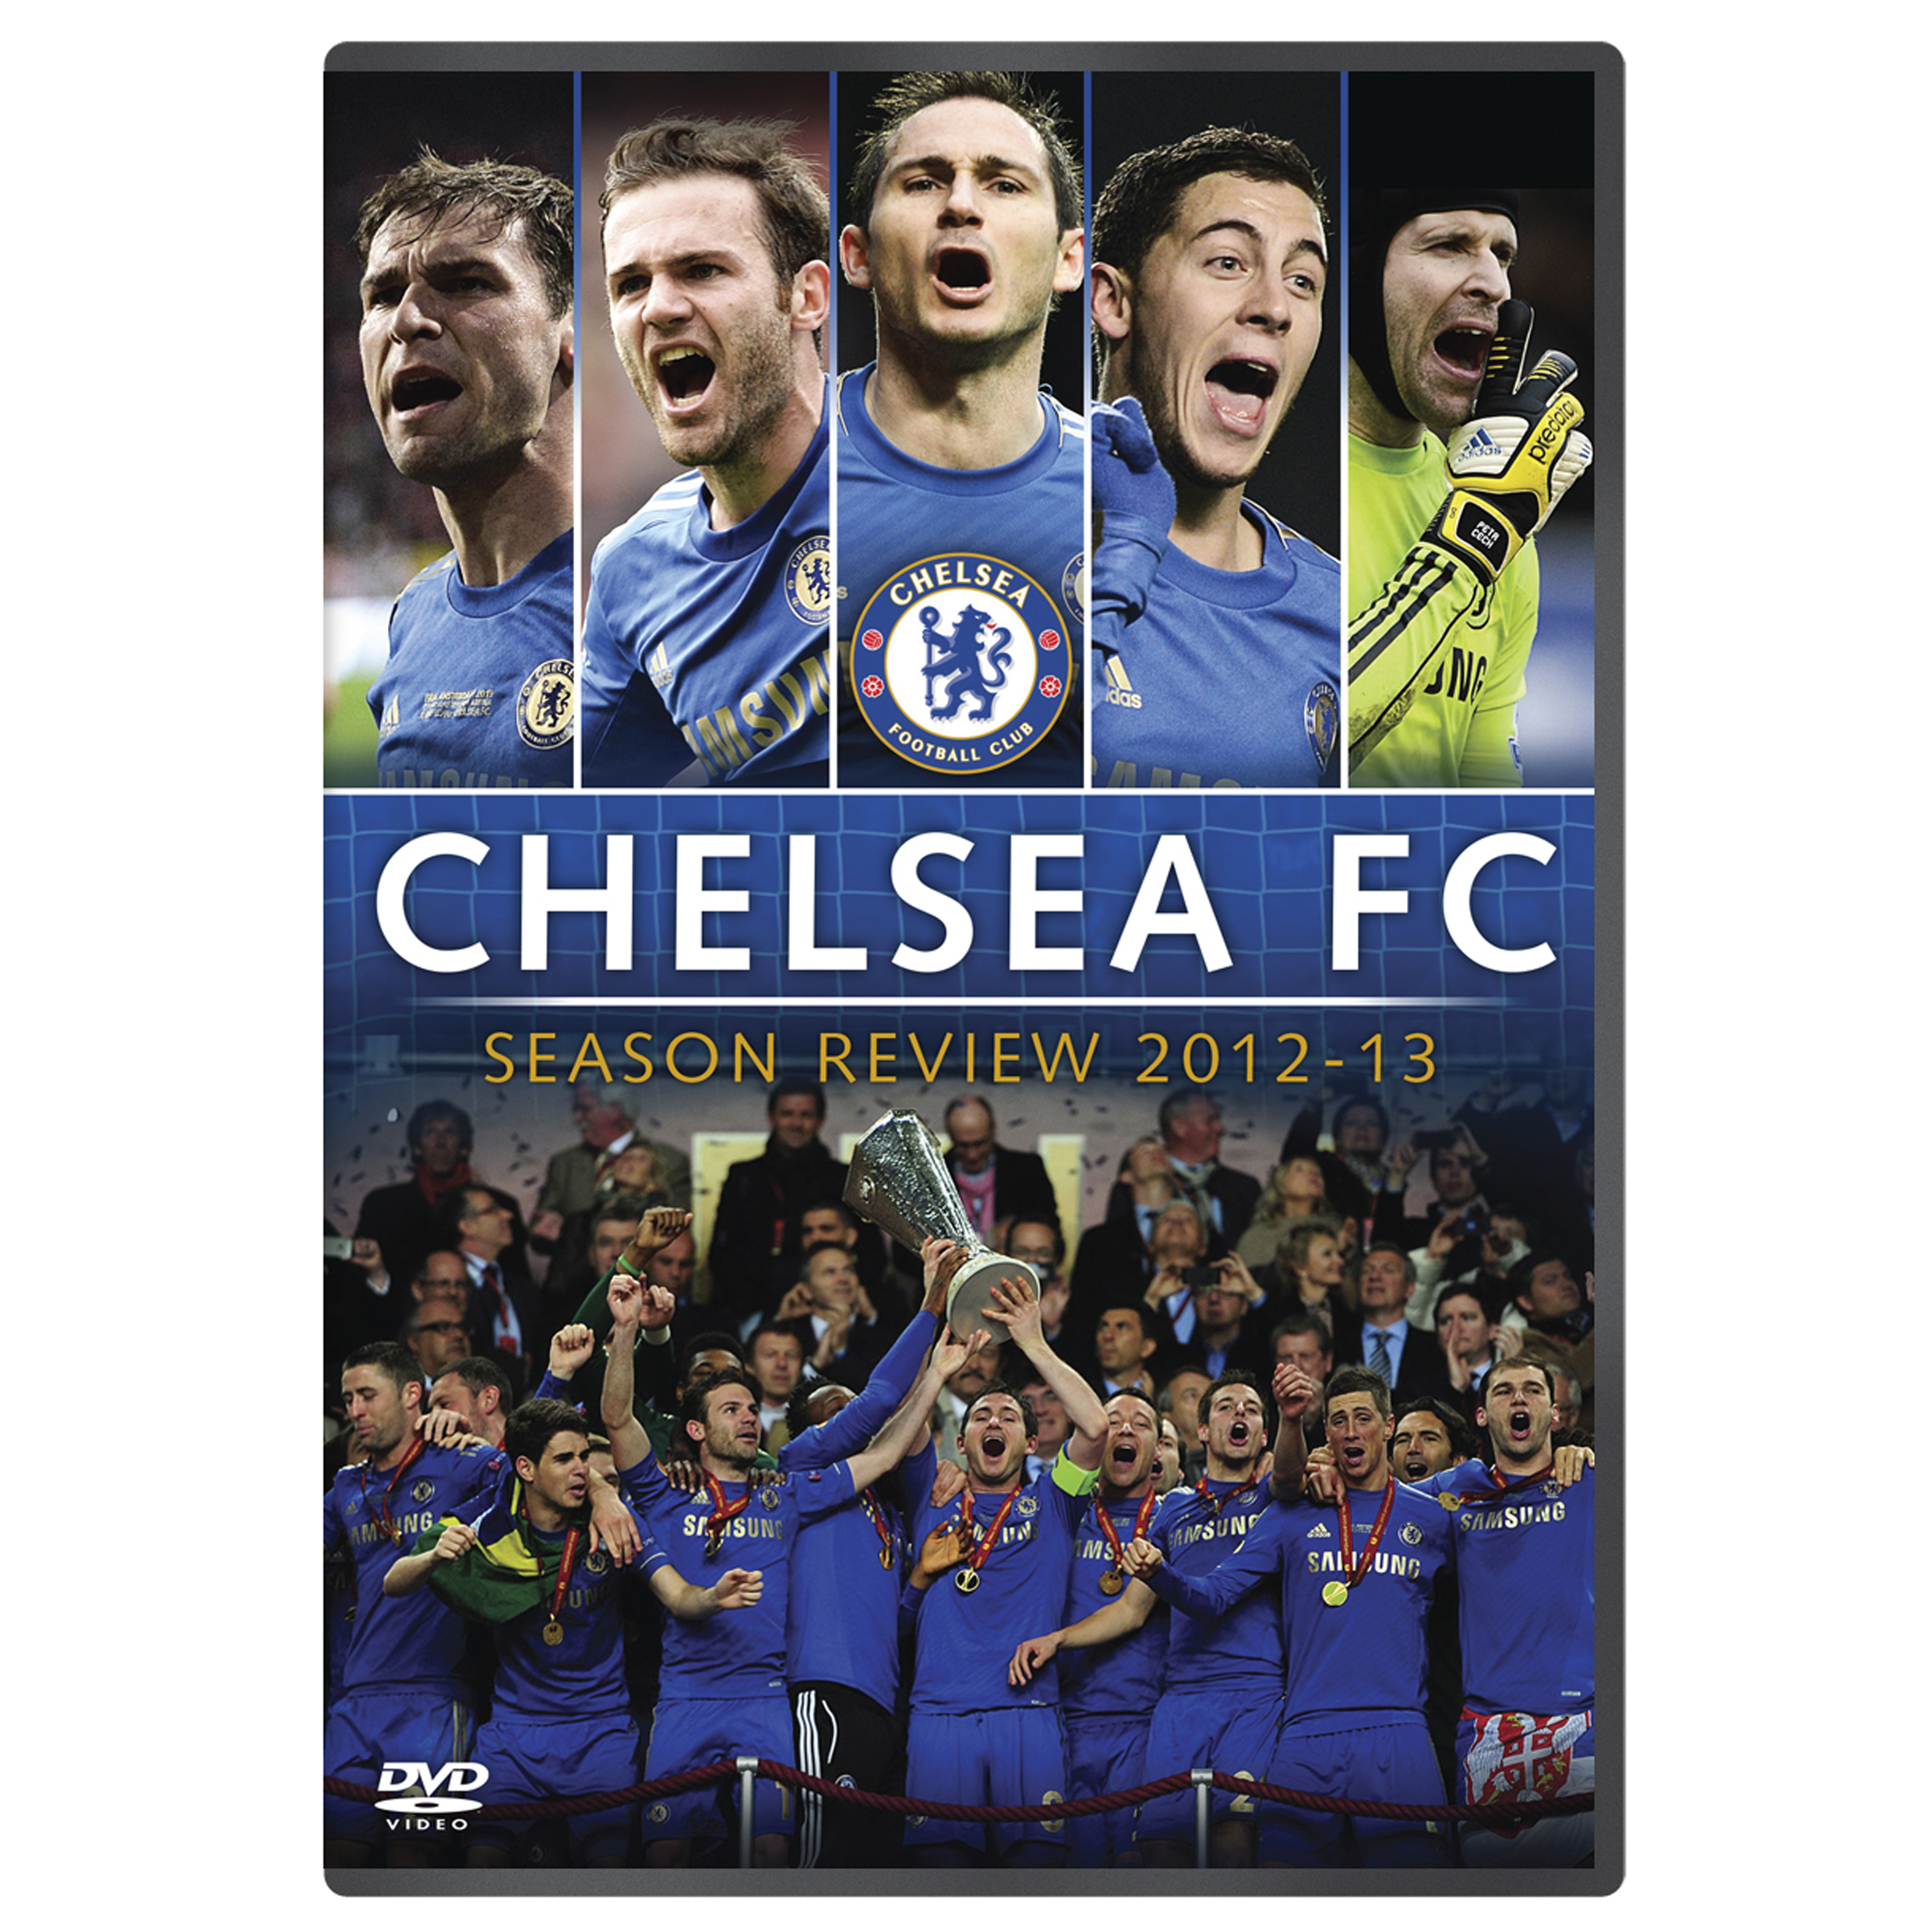 Chelsea 2012/13 Season Review DVD